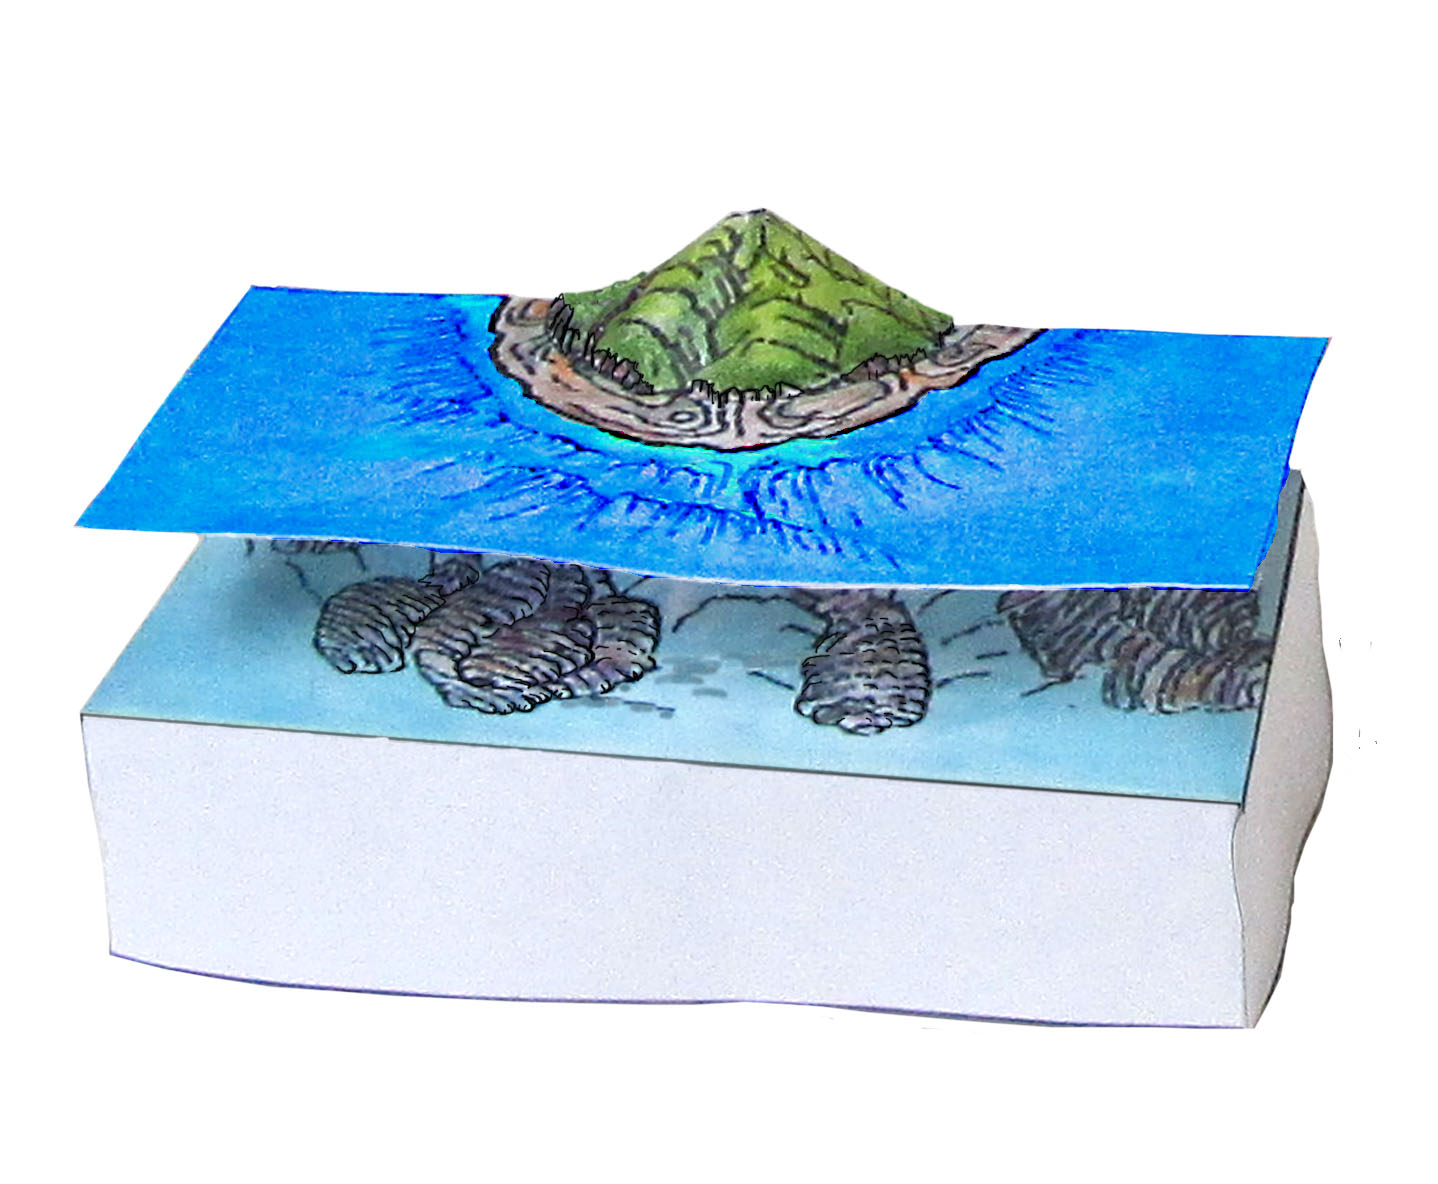 picture of volcano with coral model